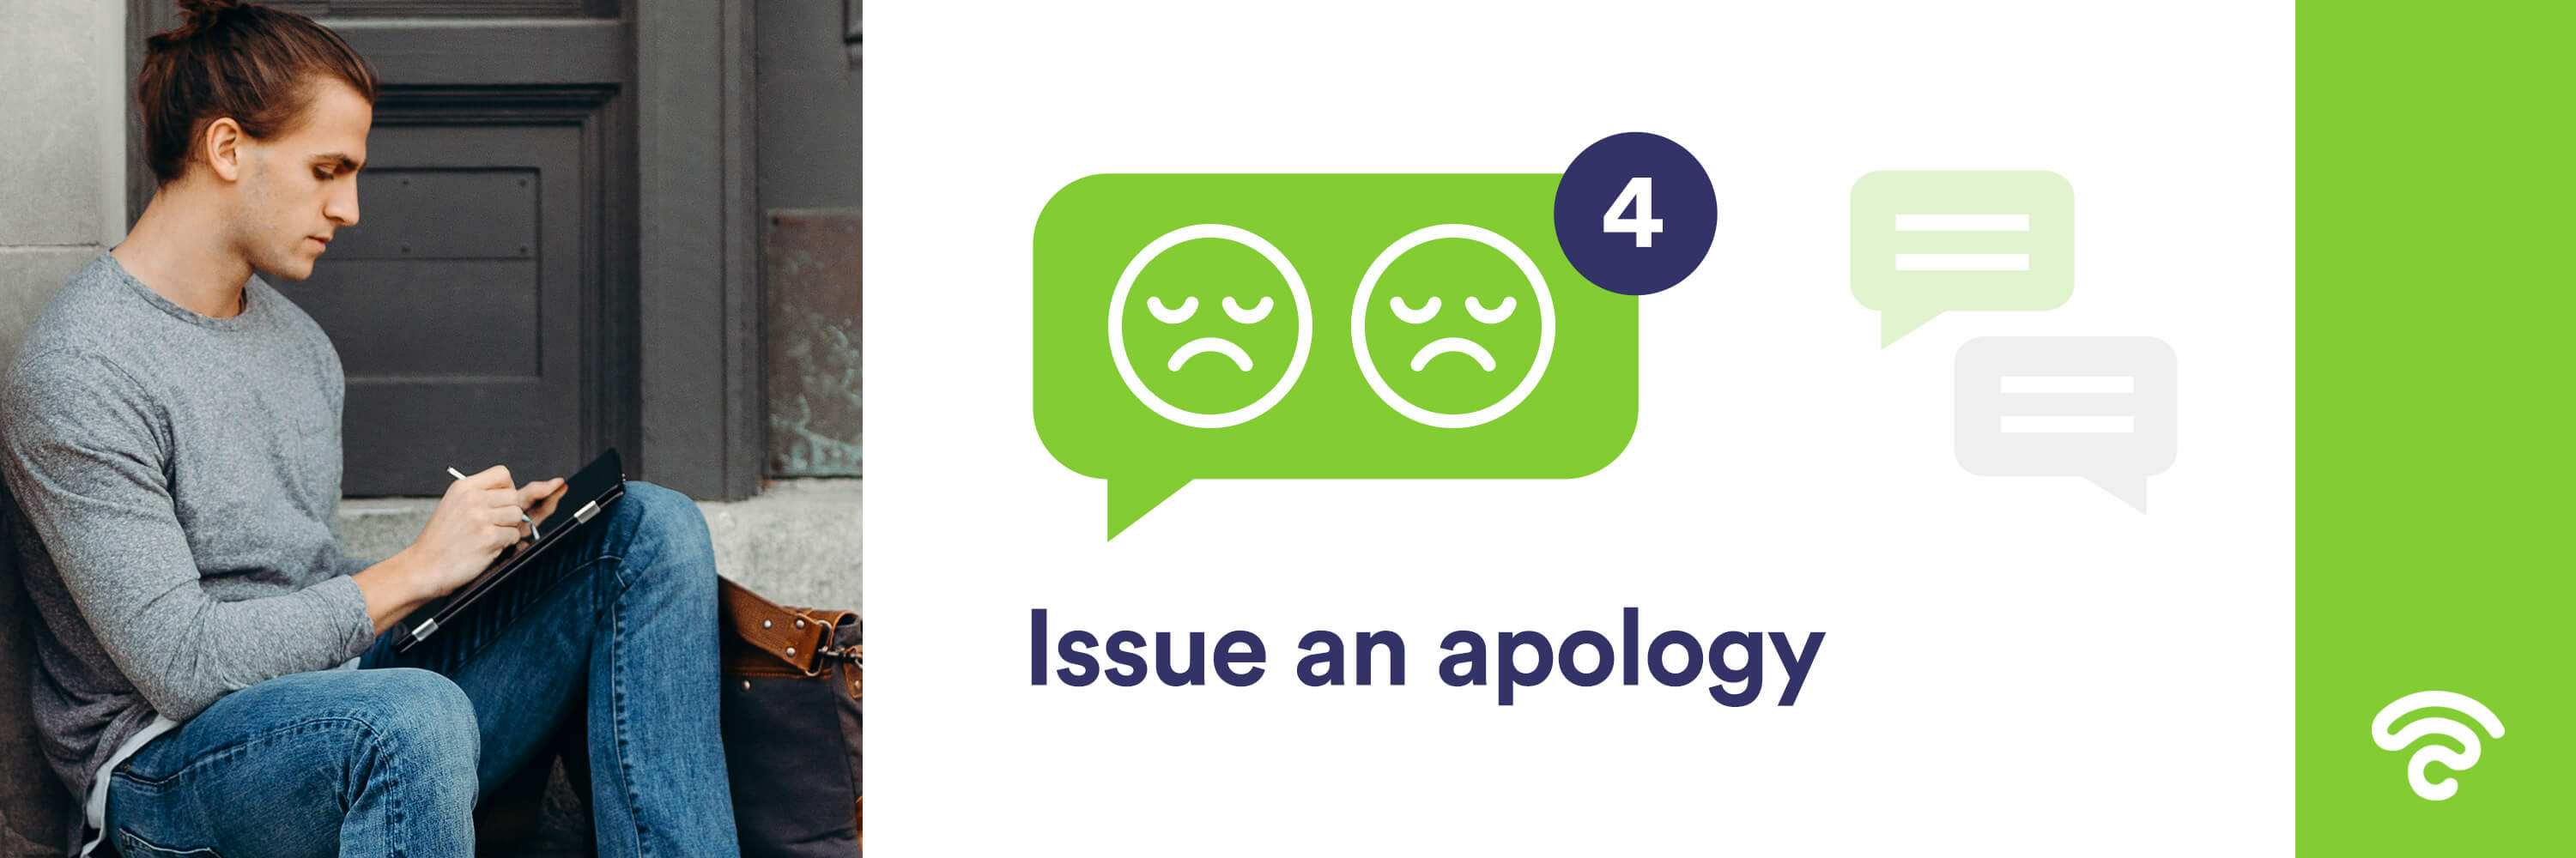 Issue an apology